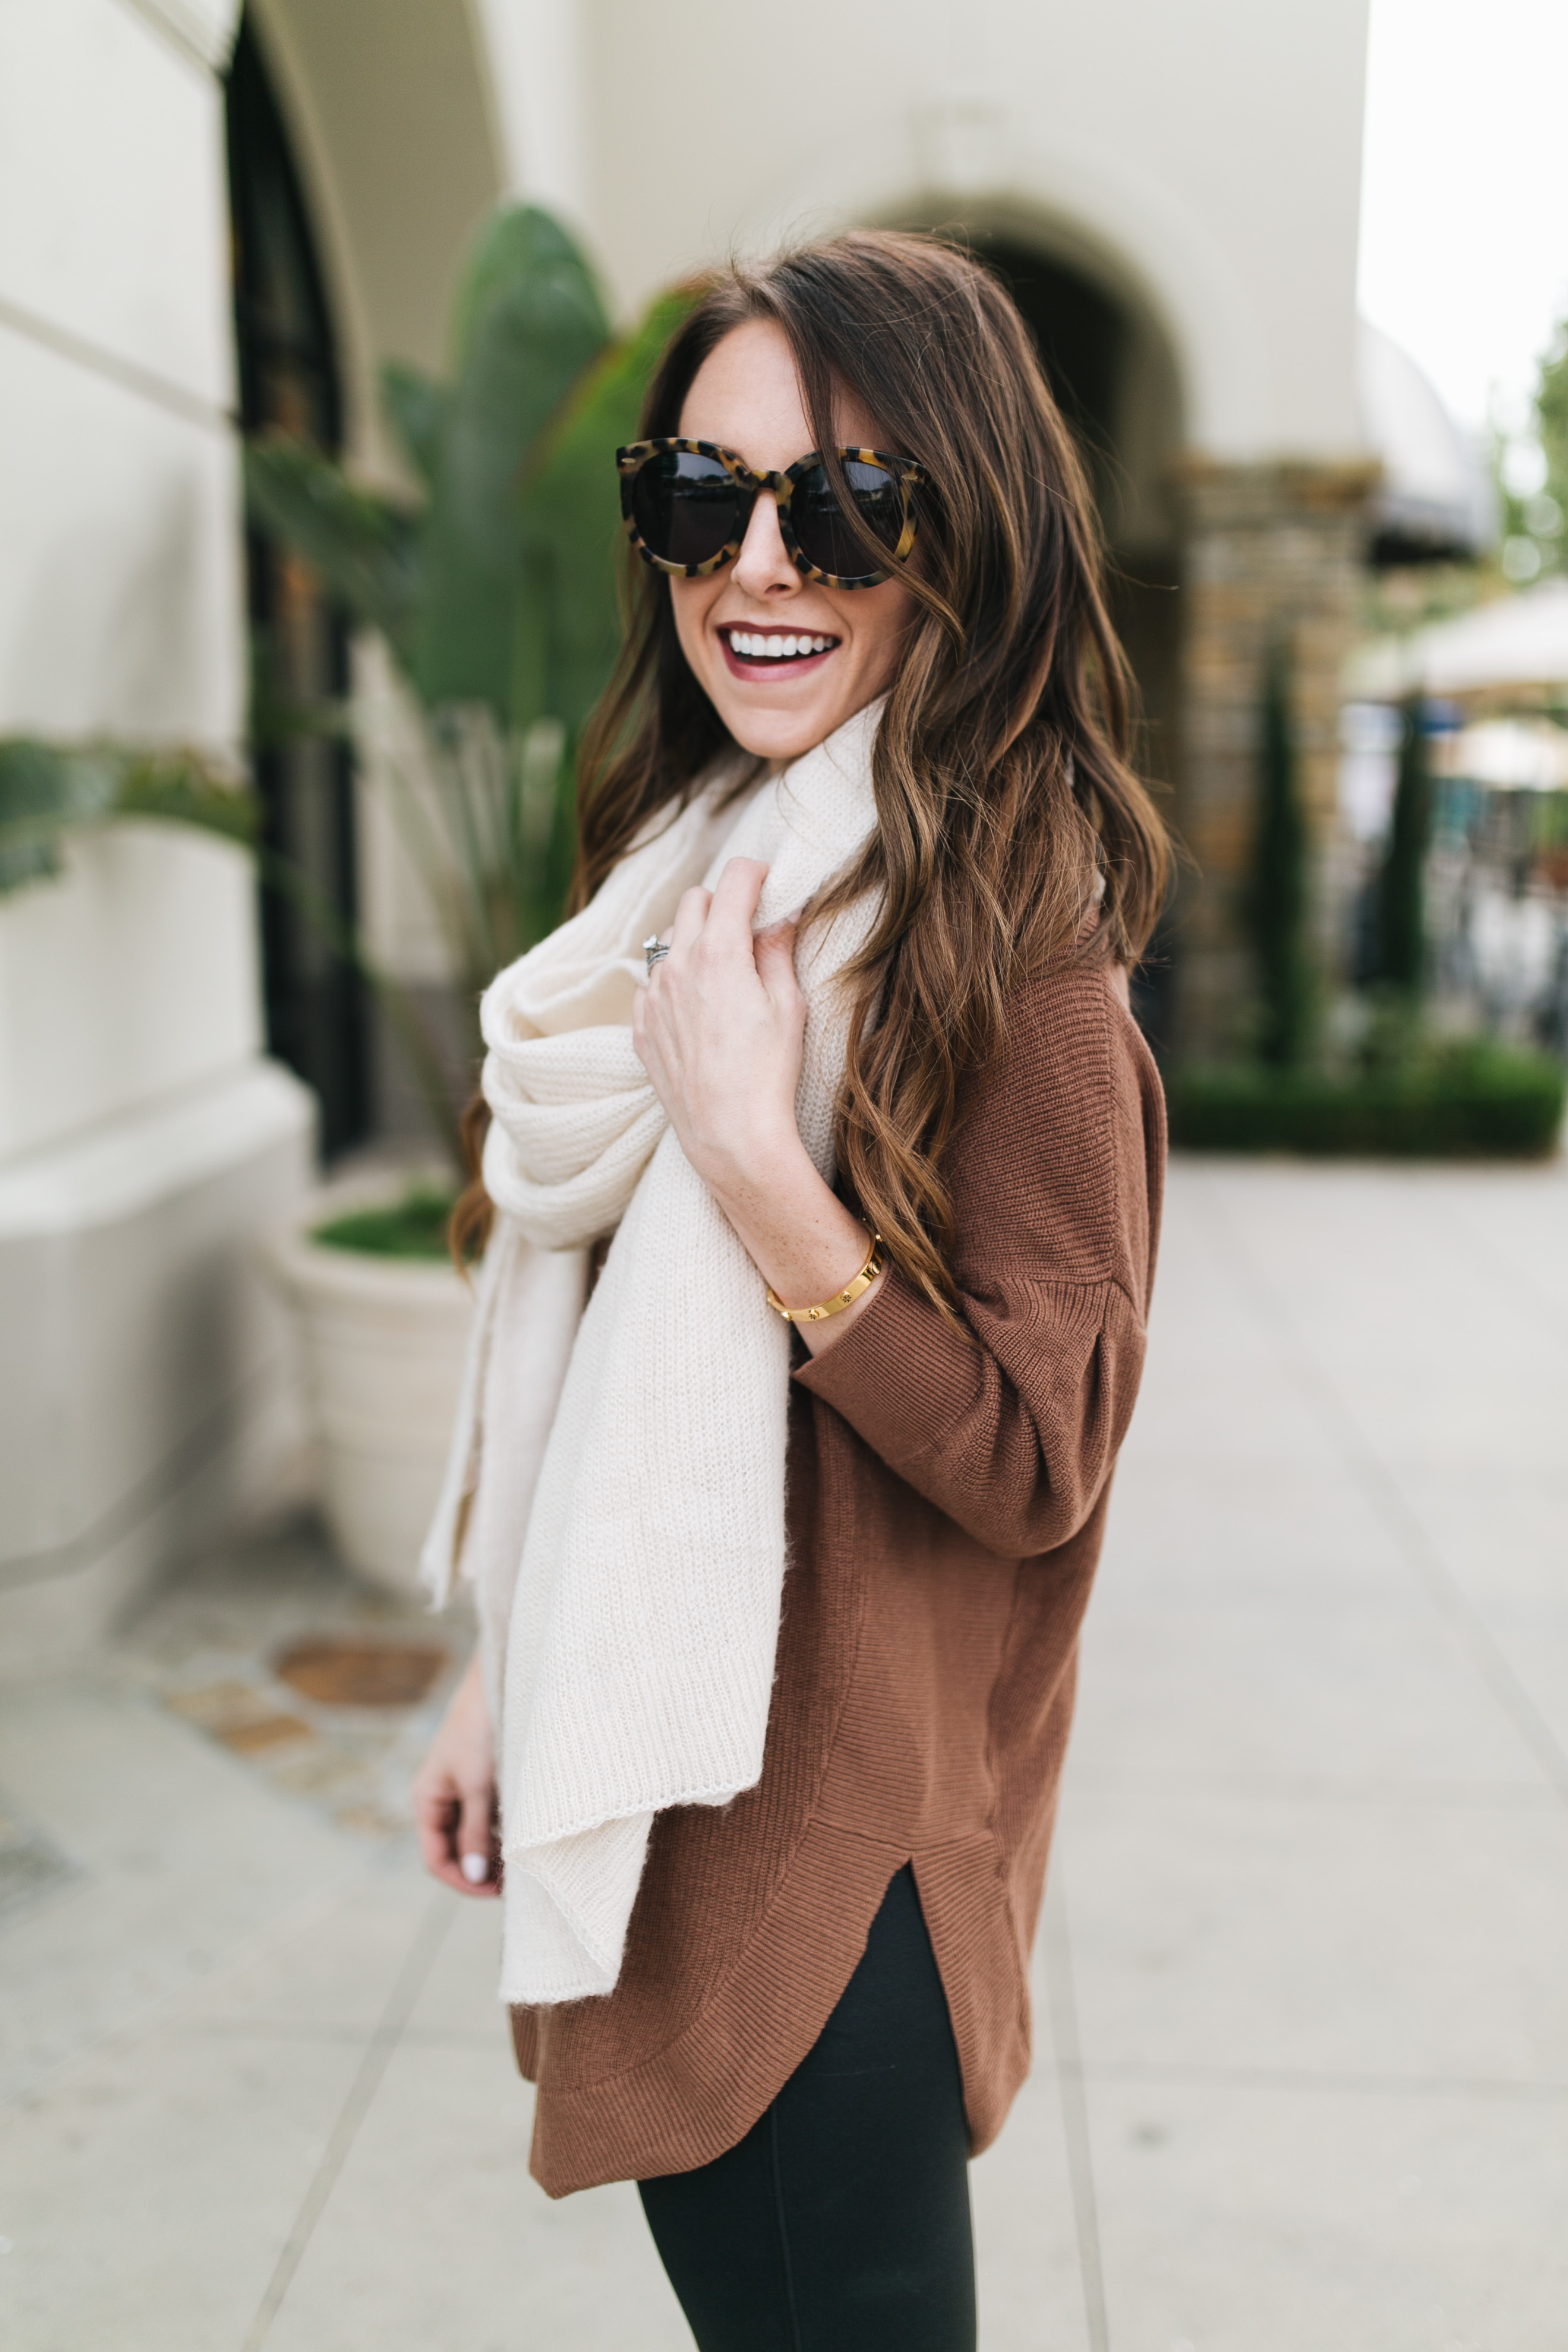 Fashion blogger Daryl-Ann Denner shares the best faux leather leggings under $100 that are super flattering, and styles them with a tunic sweater and scarf and louis vuitton bag